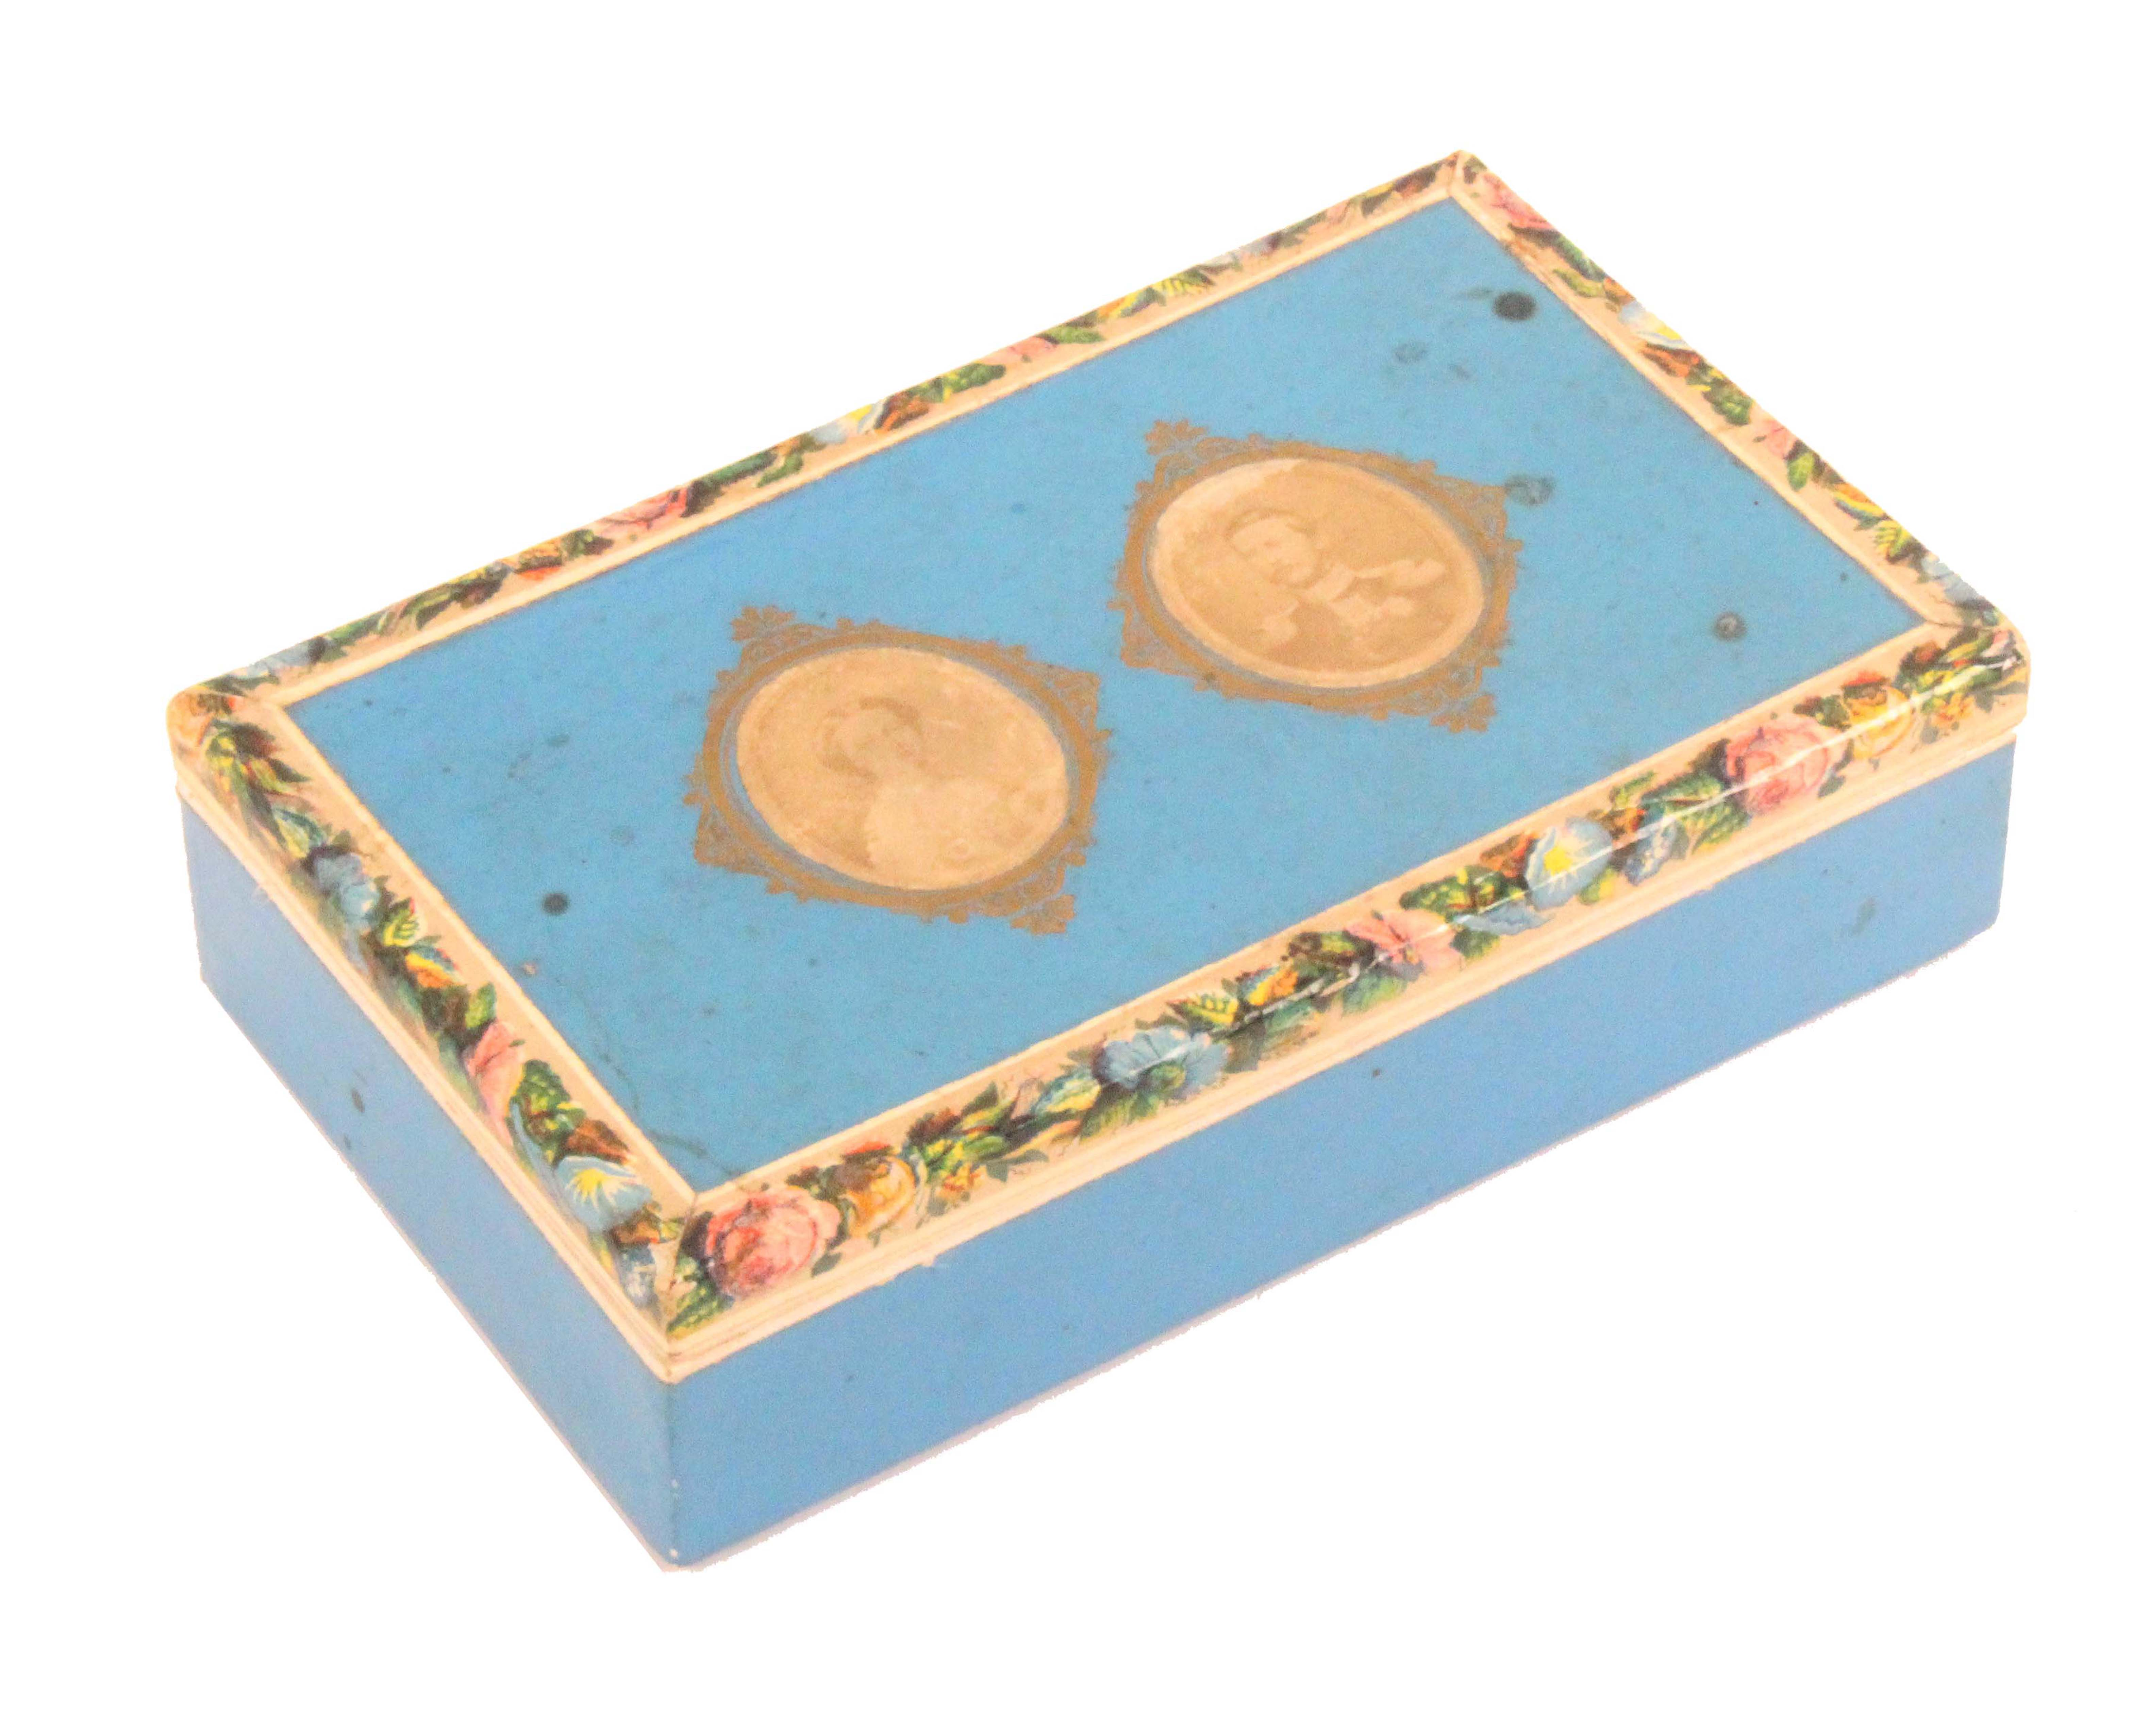 A mid 19th Century continental cardboard sewing box, probably commemorating the wedding of Franz